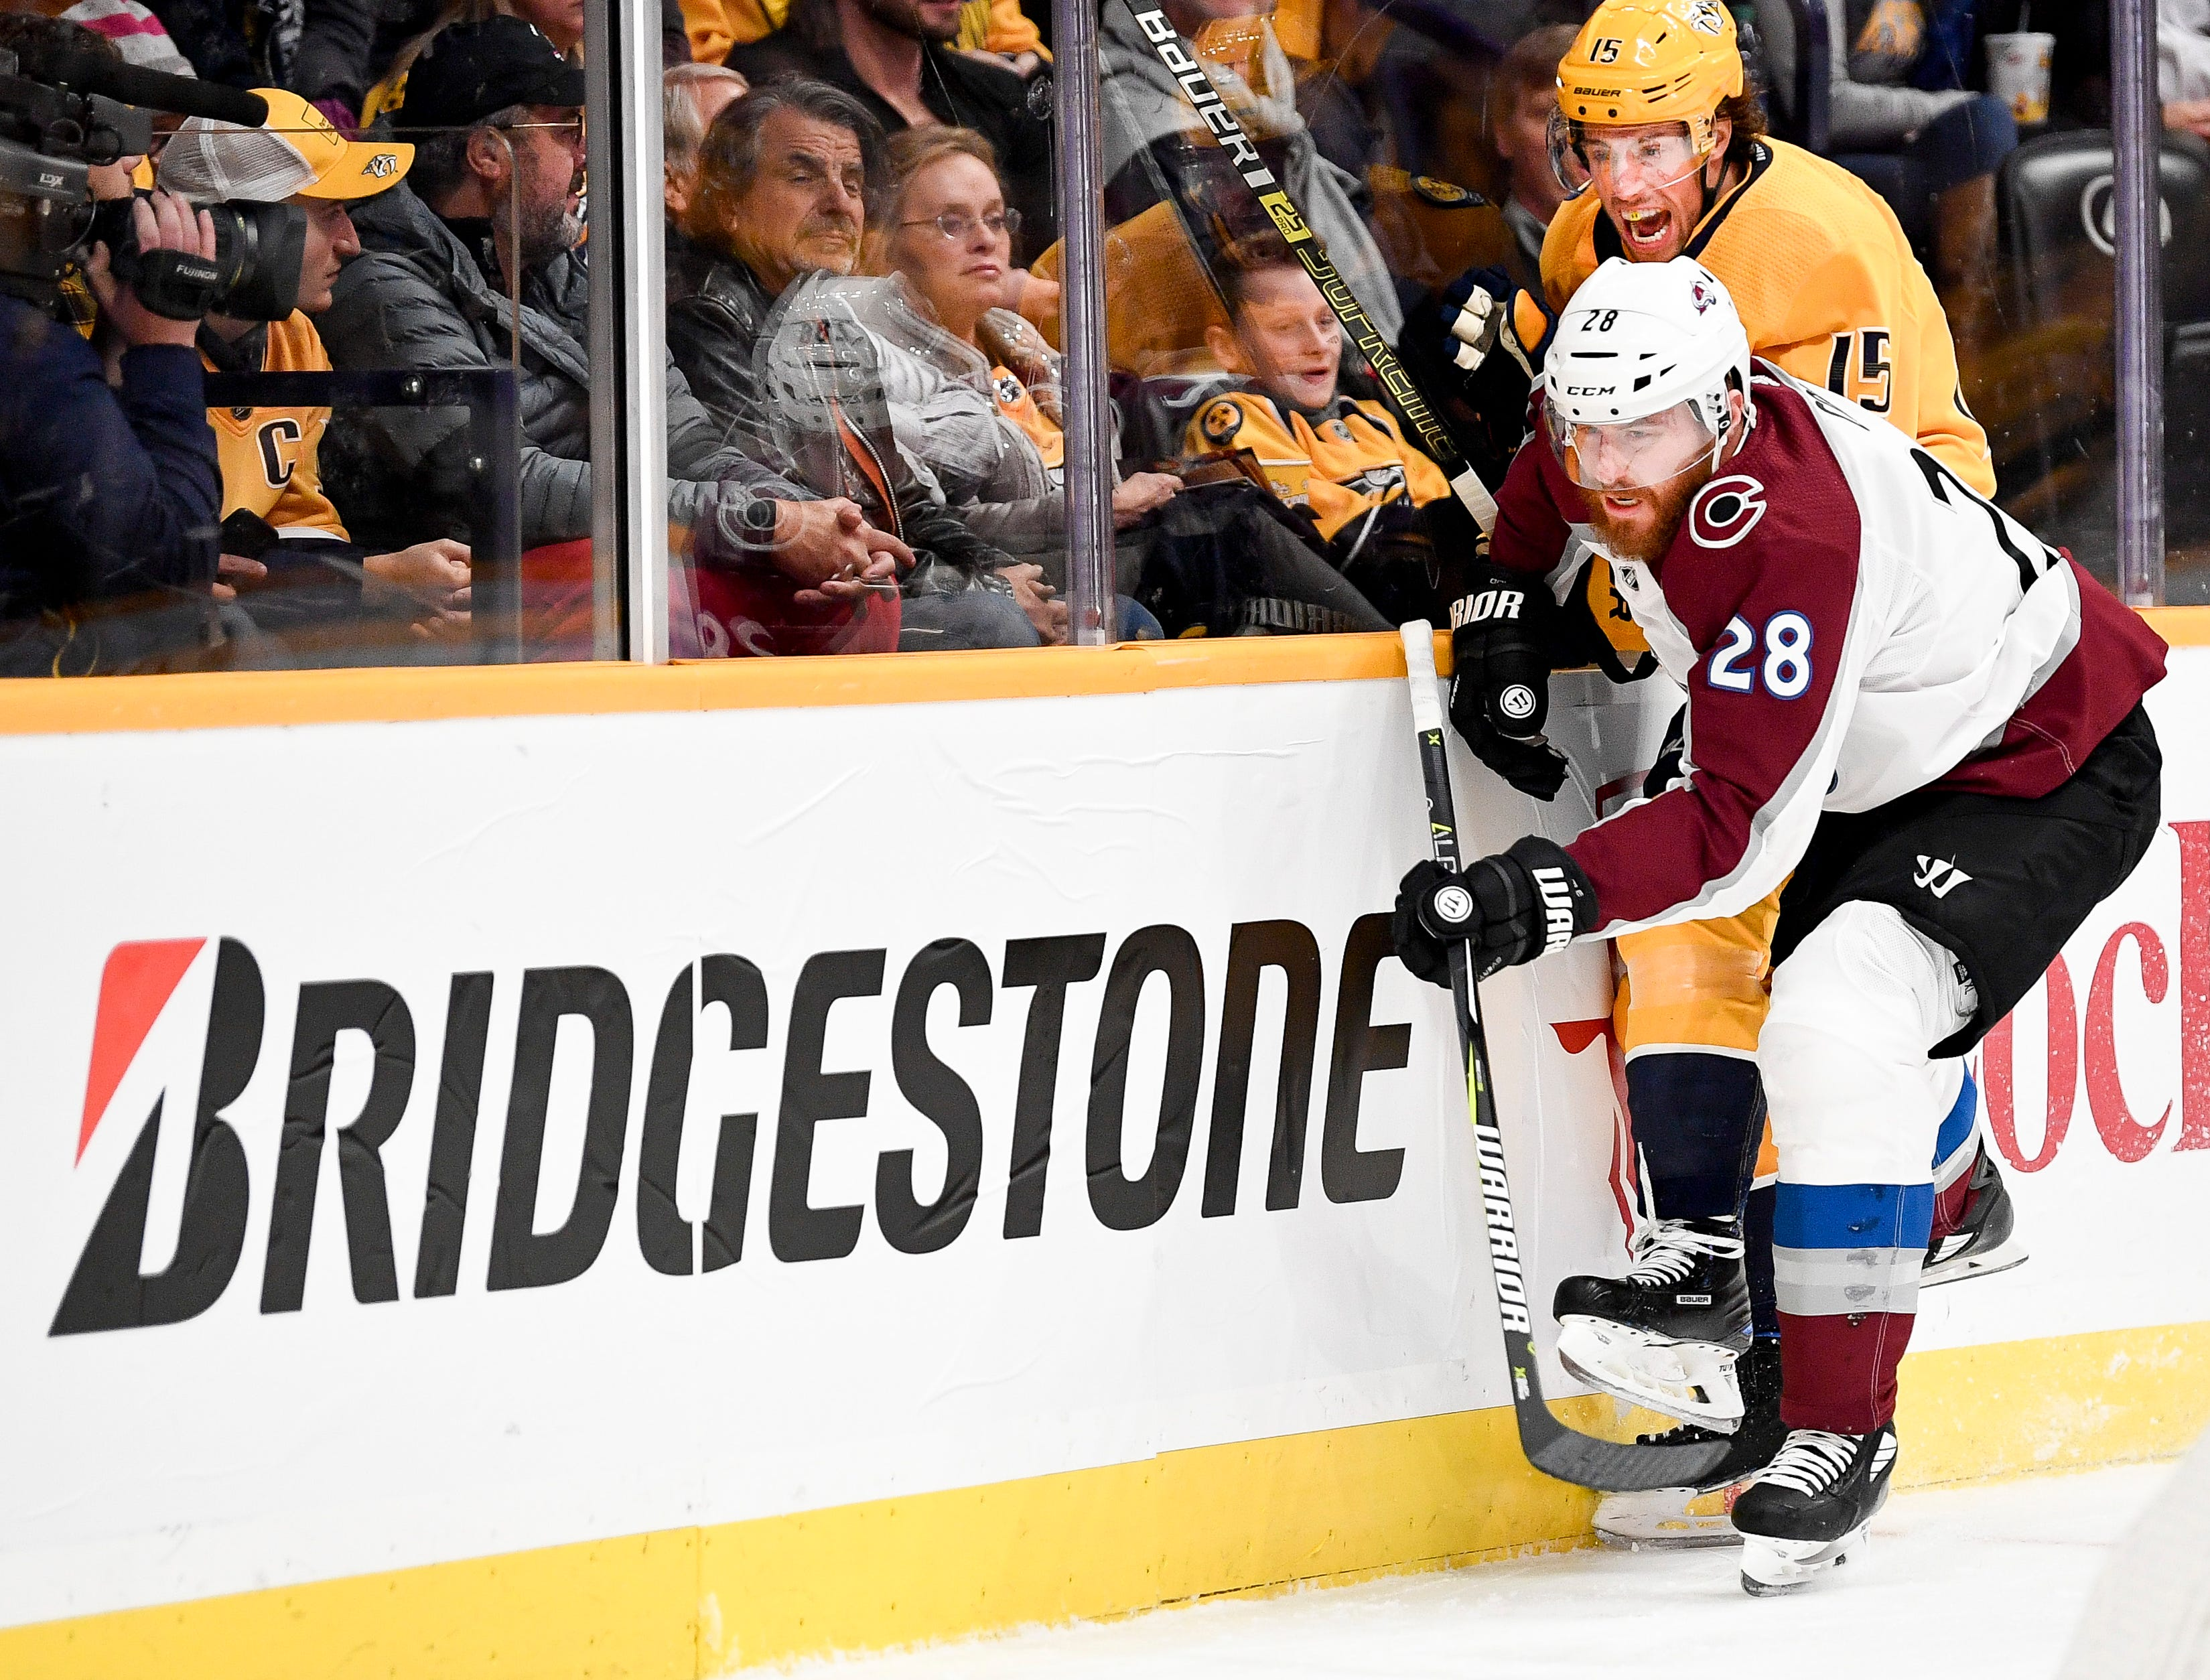 Nashville Predators right wing Craig Smith (15) battles for the puck with Colorado Avalanche defenseman Ian Cole (28) during the first period at Bridgestone Arena in Nashville, Tenn., Tuesday, Nov. 27, 2018.